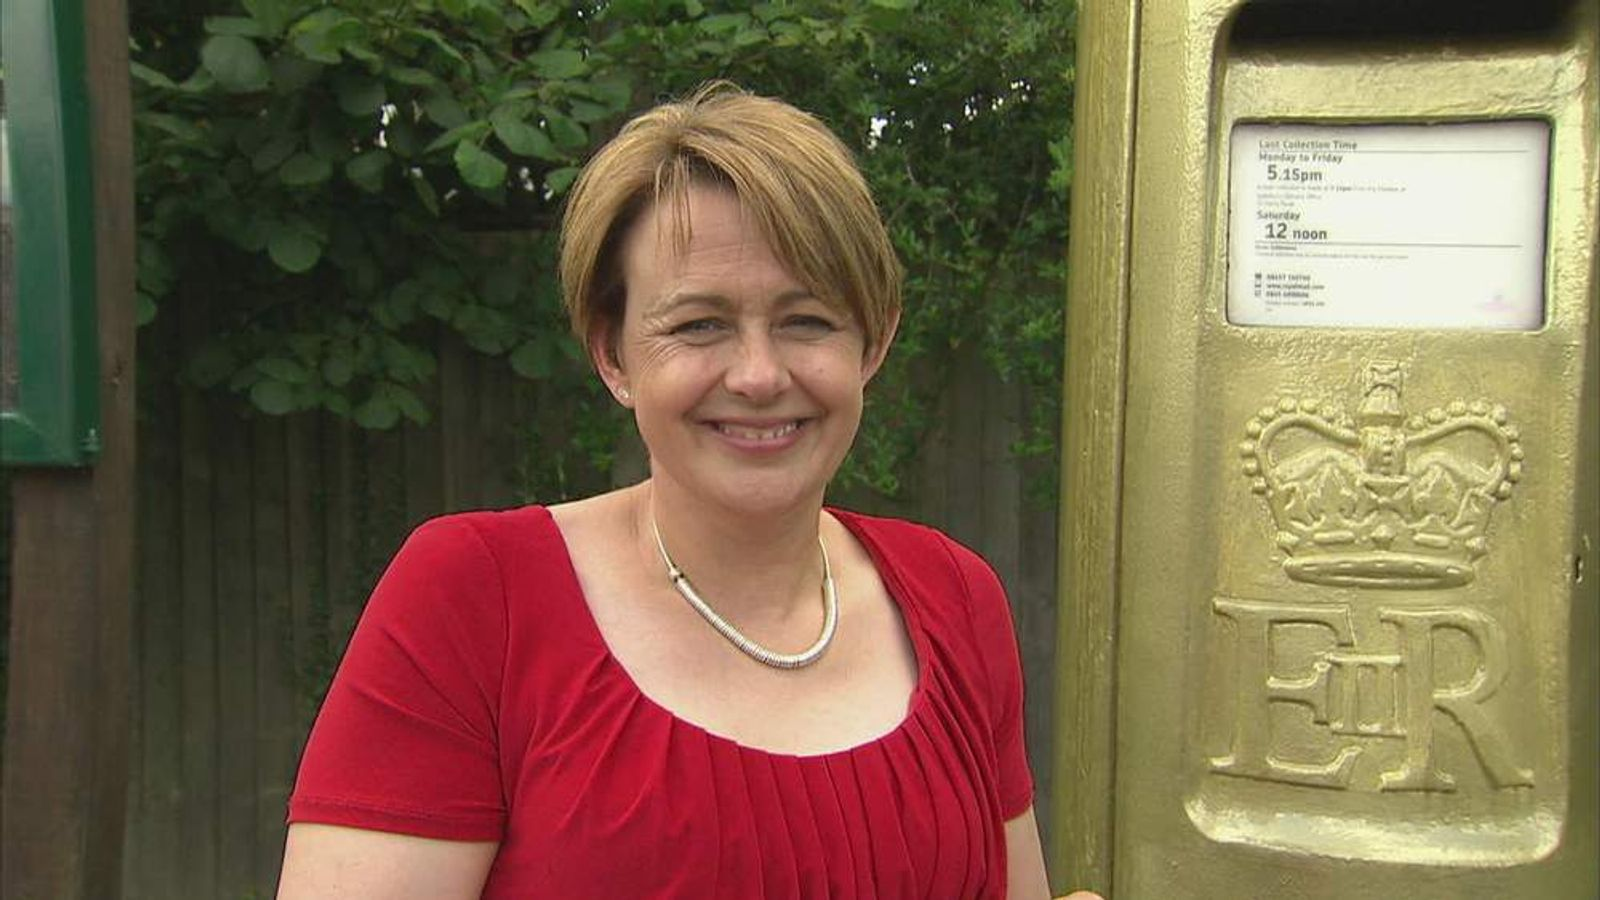 Paralympic champion Baroness Tanni Grey-Thompson